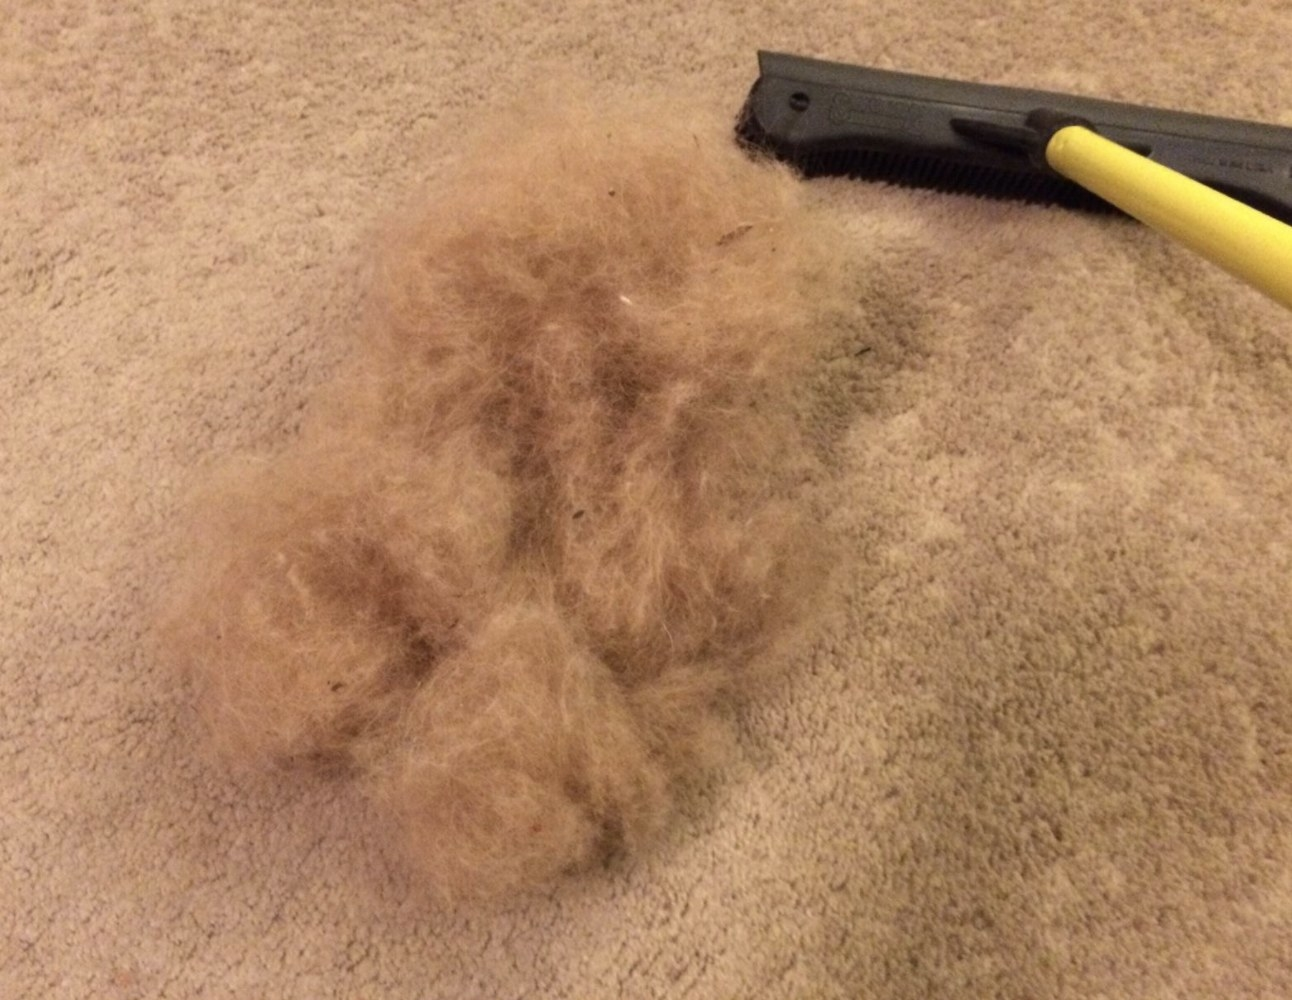 A pile of fur from a carpet next to a pet hair removal broom